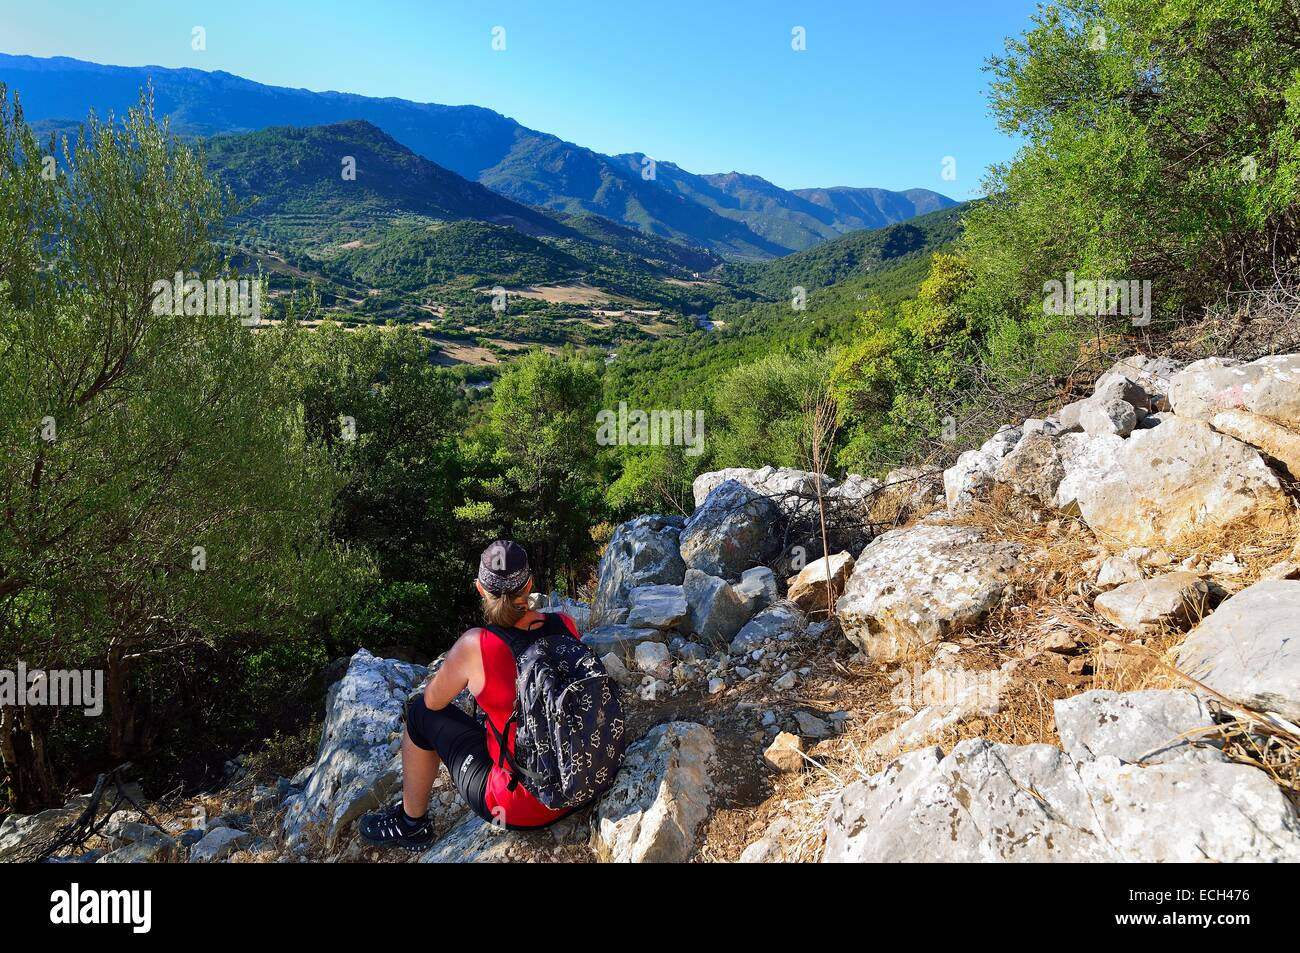 Tourist on a hike along an old charburner's path, Gennargentu National Park, Supramonte, Province of Nuoro, - Stock Image